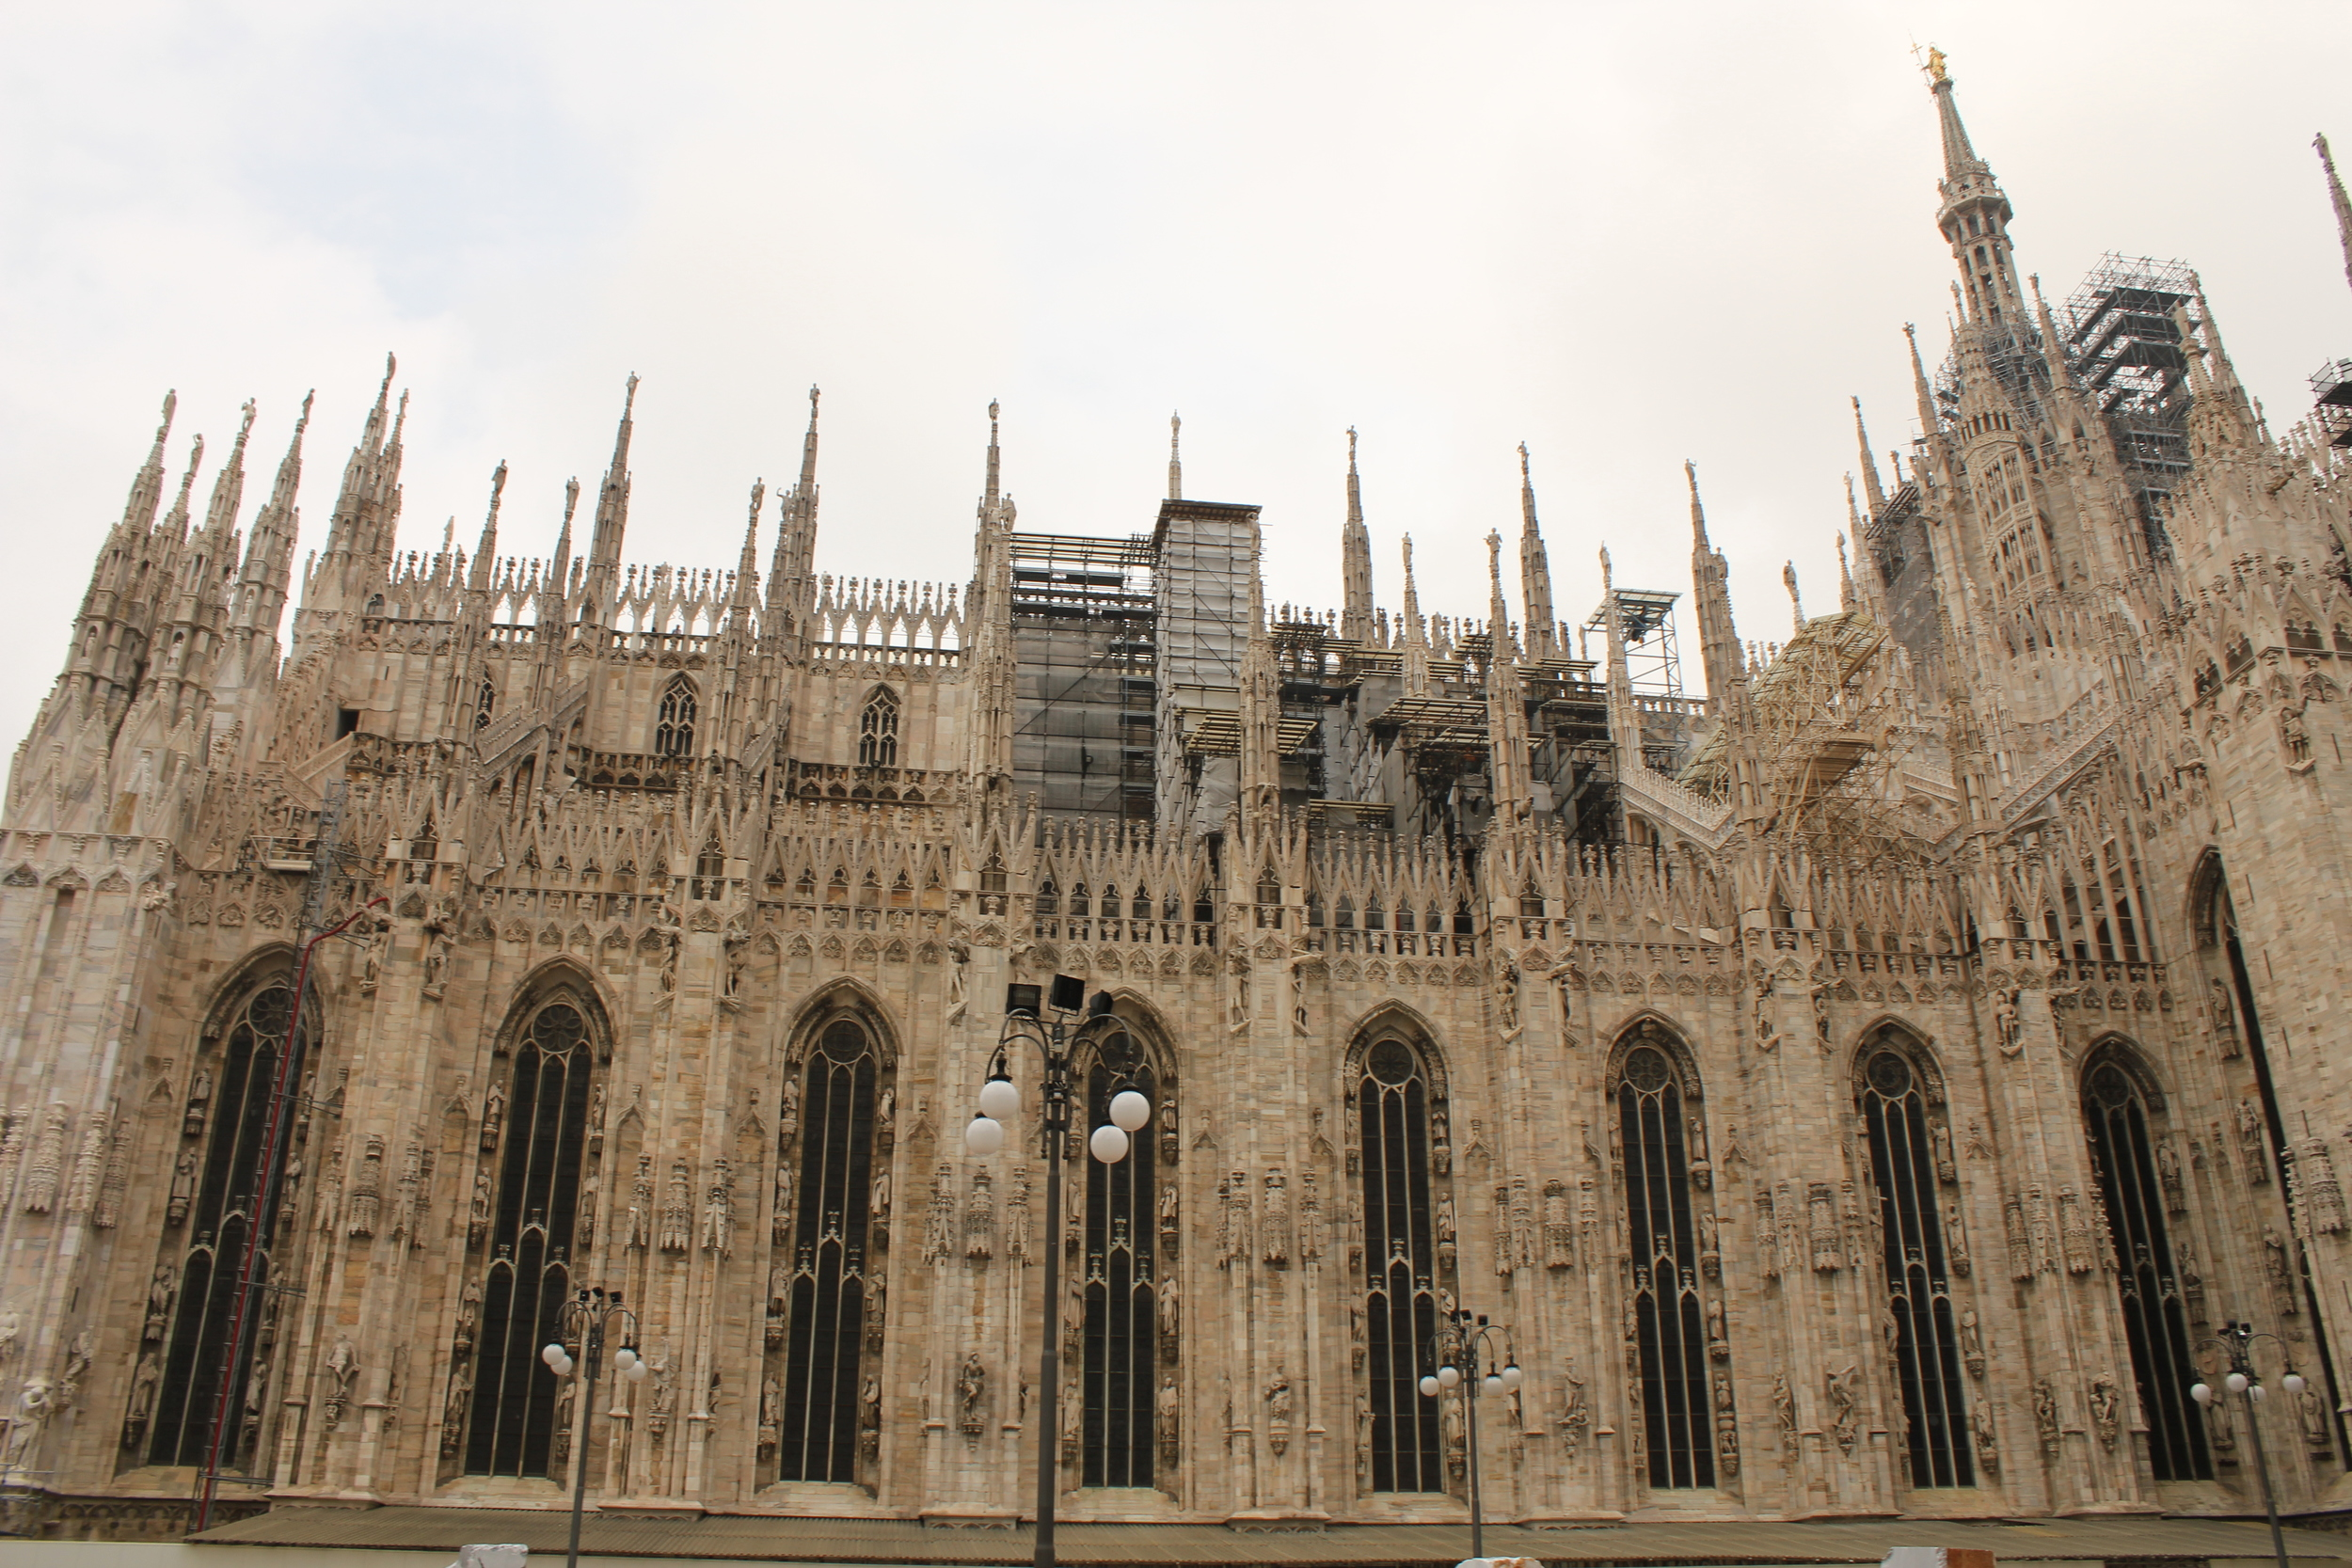 Il Duomo from the side